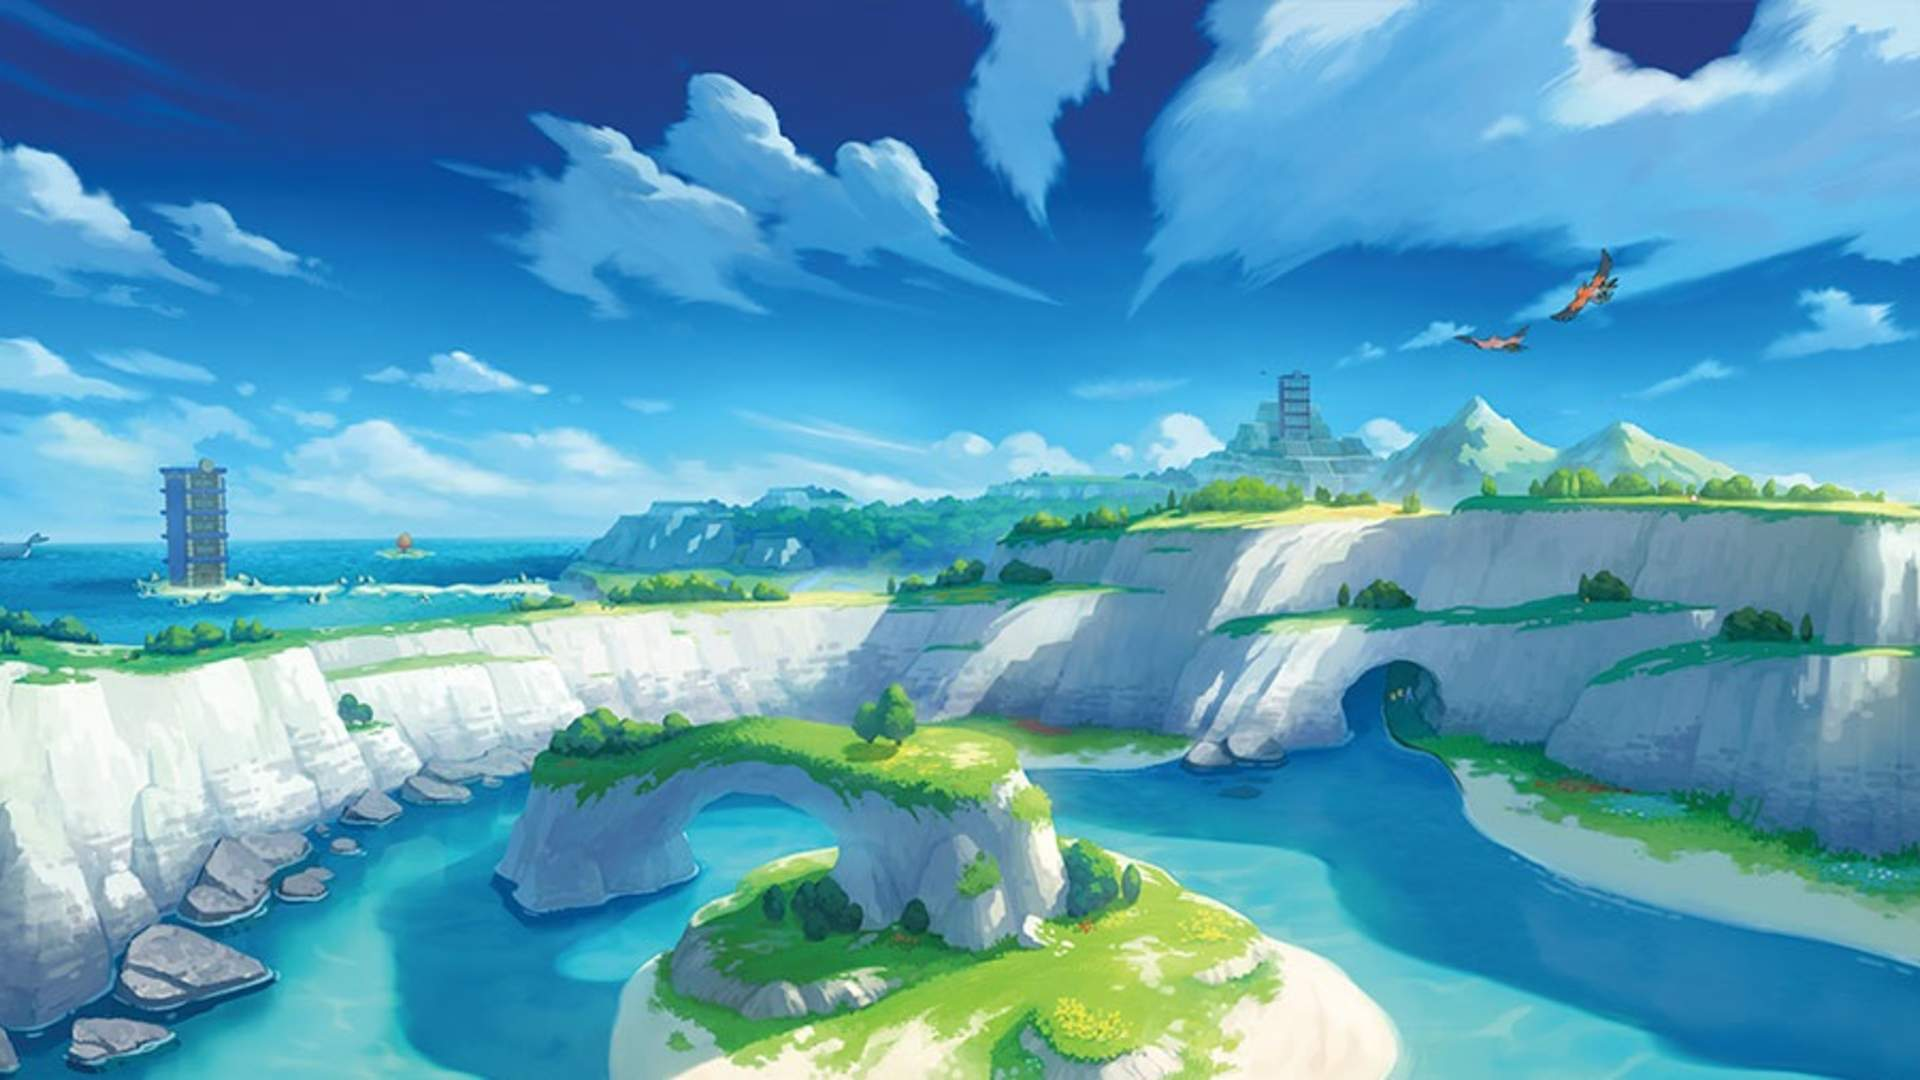 PSA: You can grab a few Pokemon Sword and Shield items for free screenshot